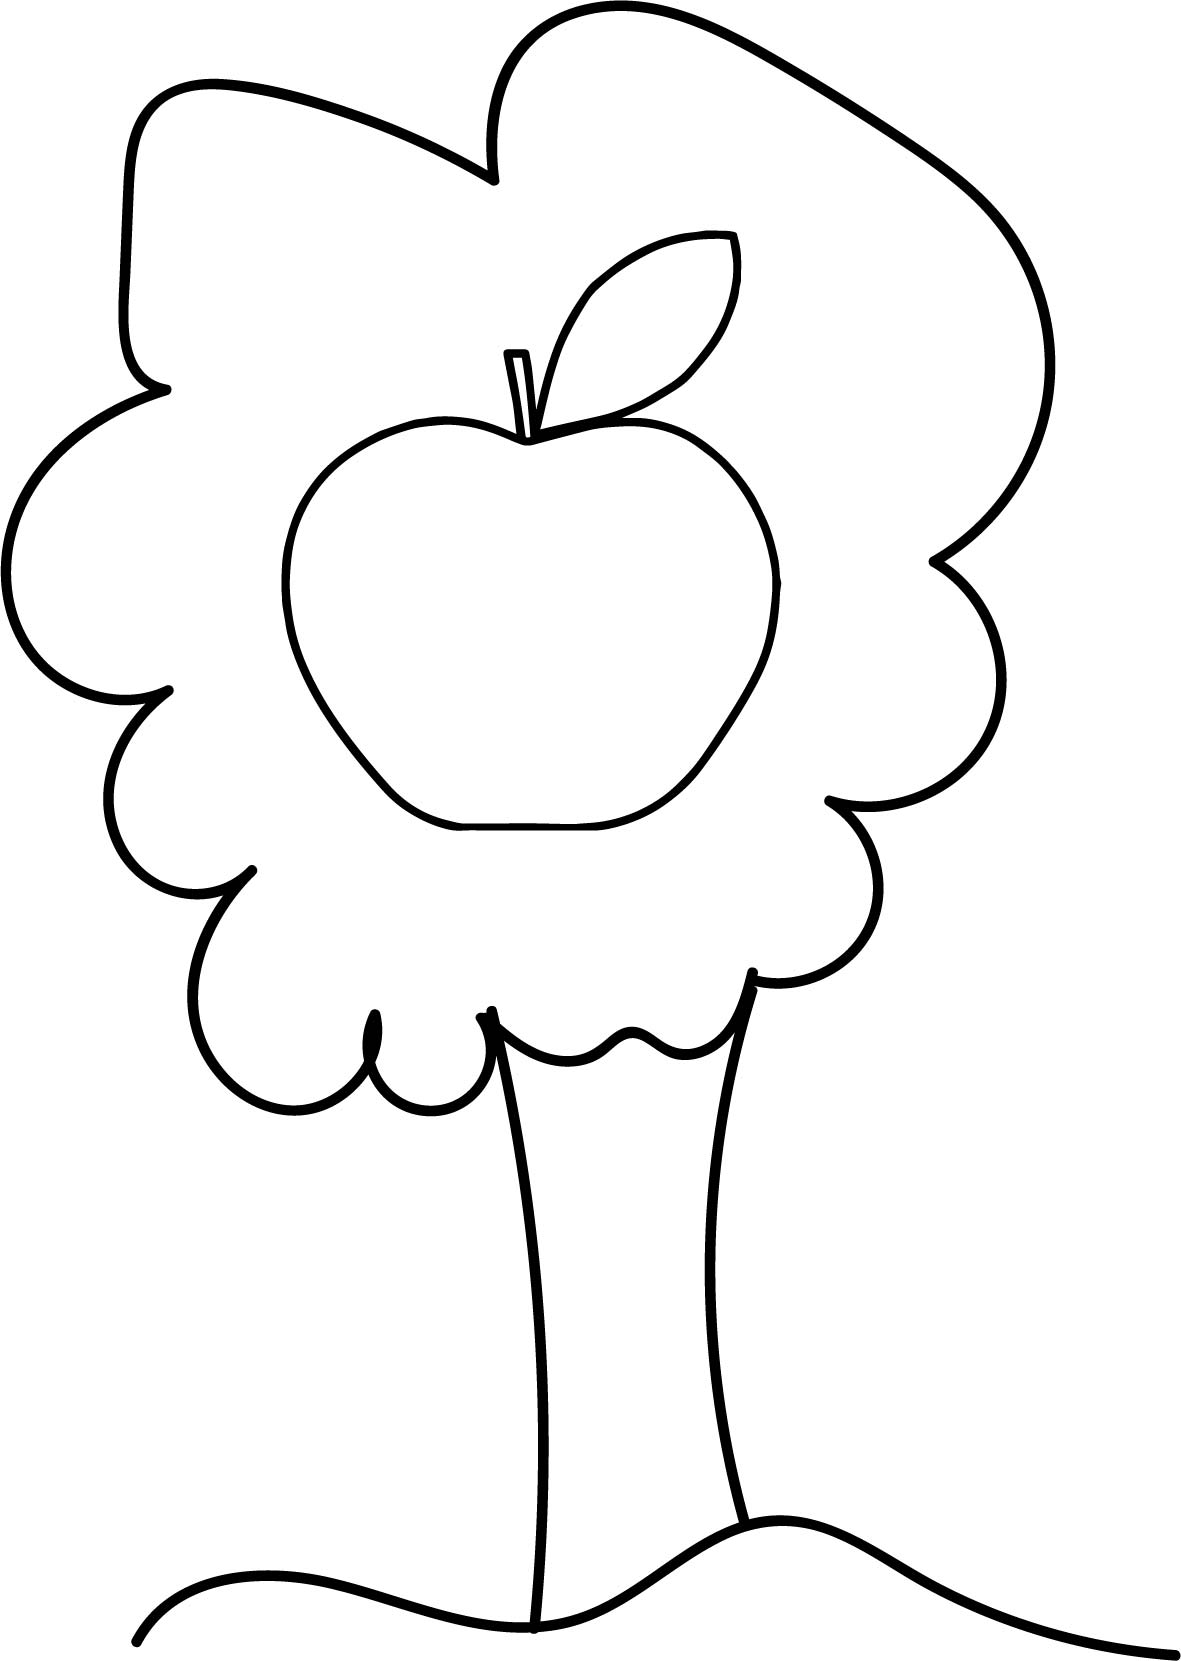 Proud Apple Tree Coloring Page